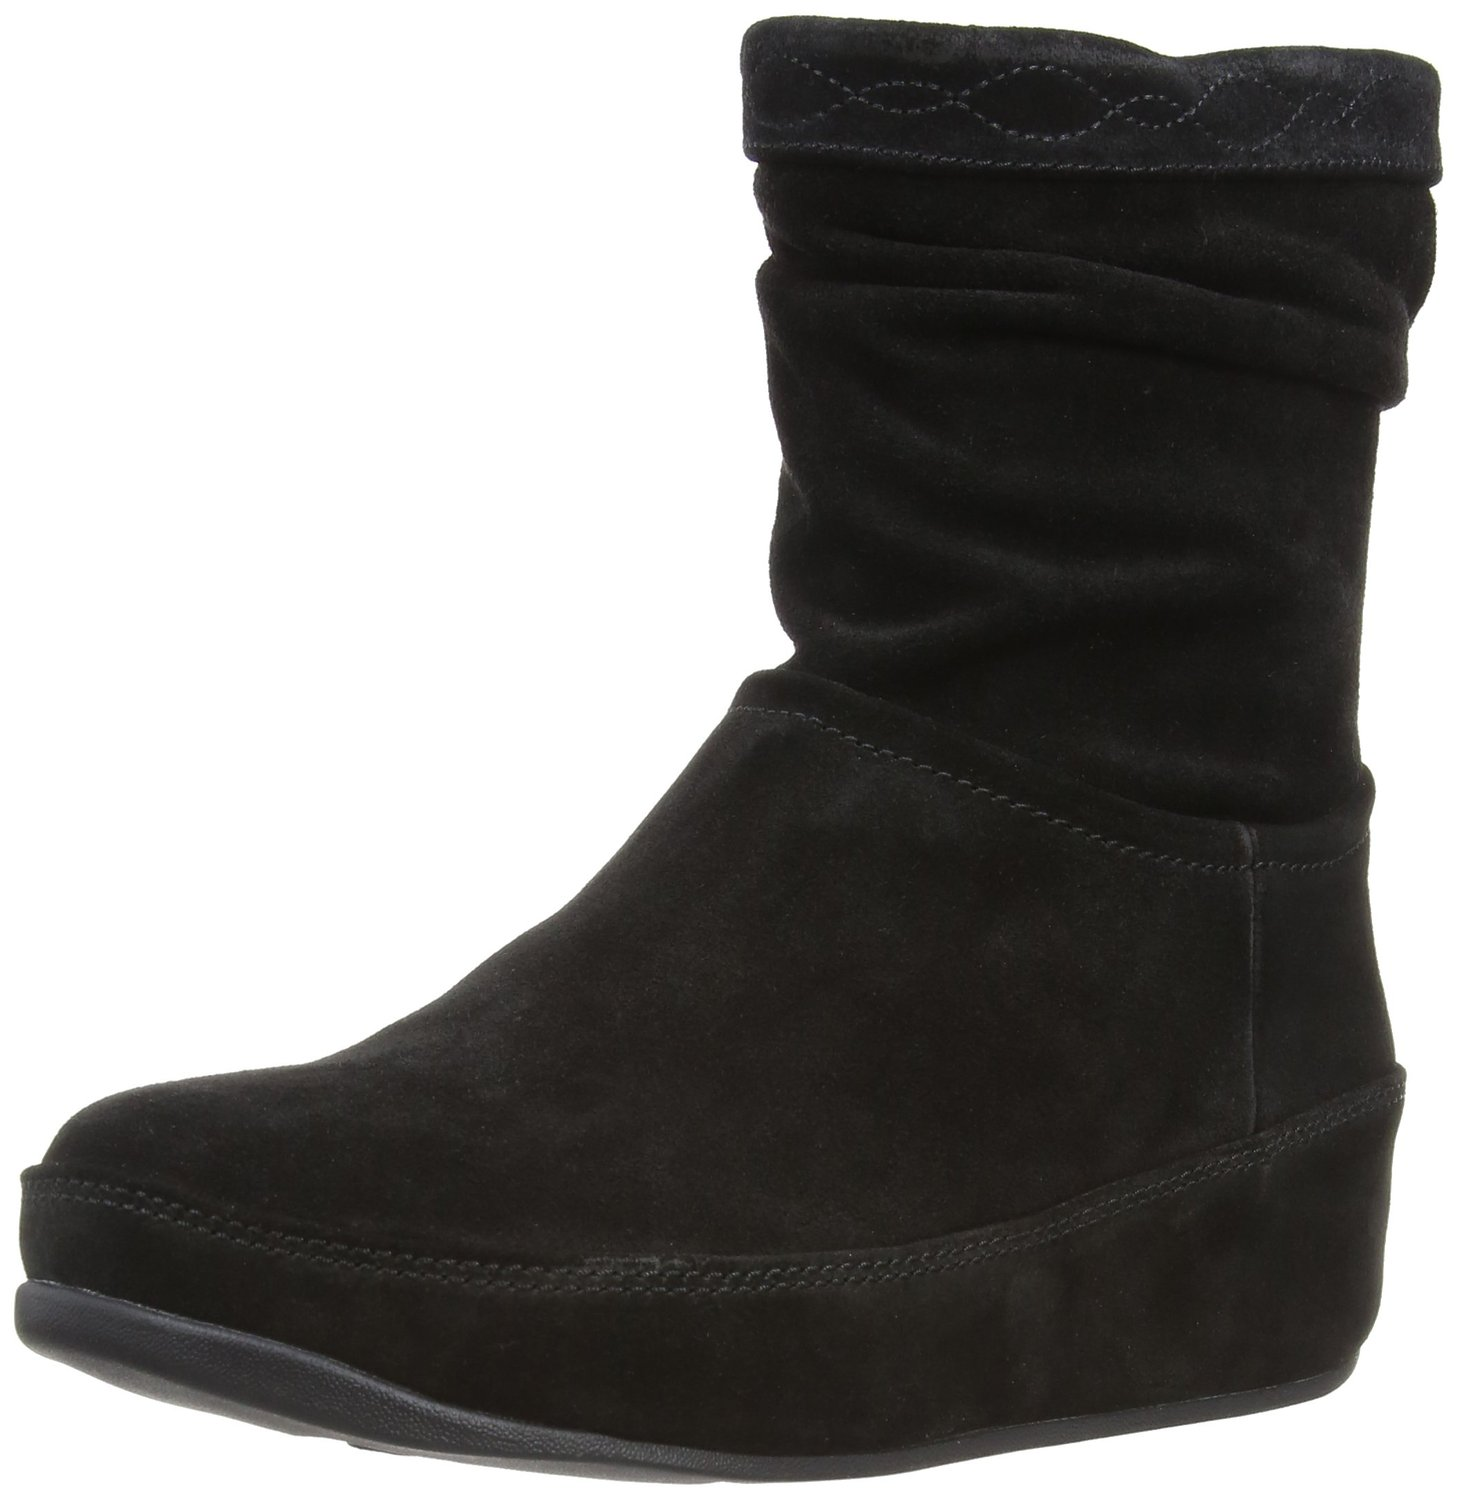 fitflop zip up crush suede boot. Black Bedroom Furniture Sets. Home Design Ideas